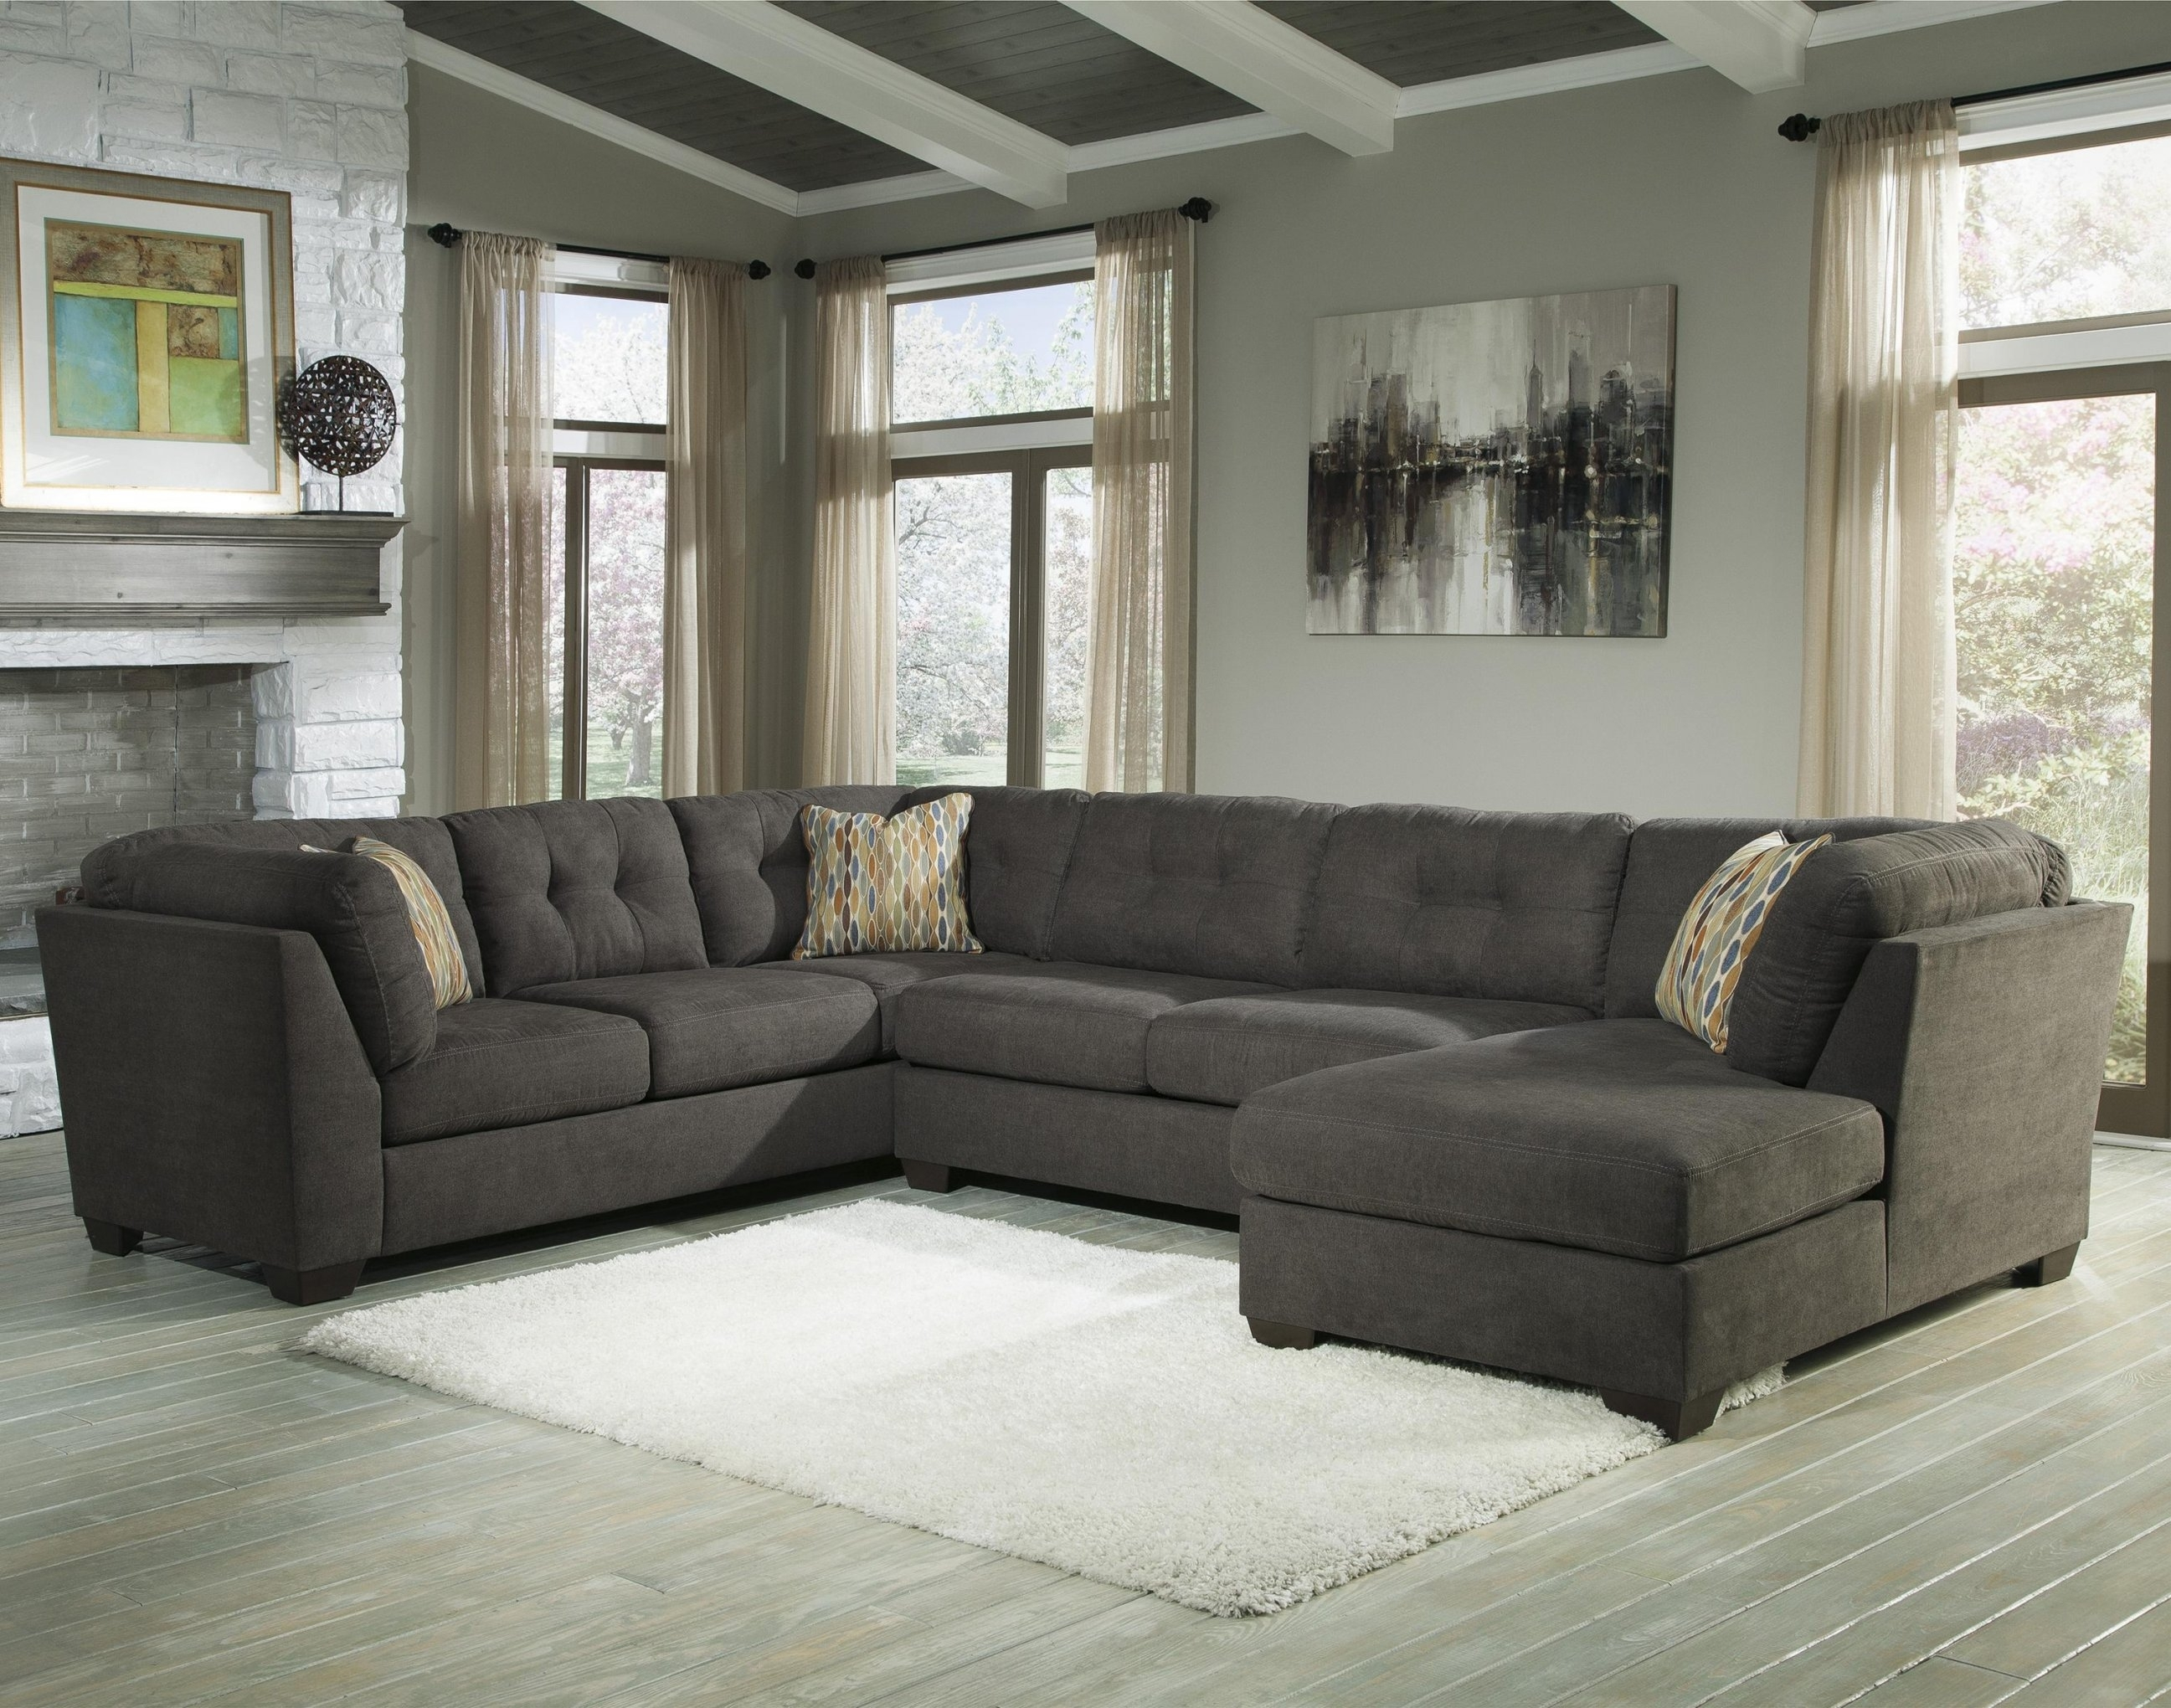 Piece Modular Sectional W/ Armless Sleeper & Right Chaise In 3 Piece intended for 3 Piece Sectional Sleeper Sofas (Image 8 of 10)